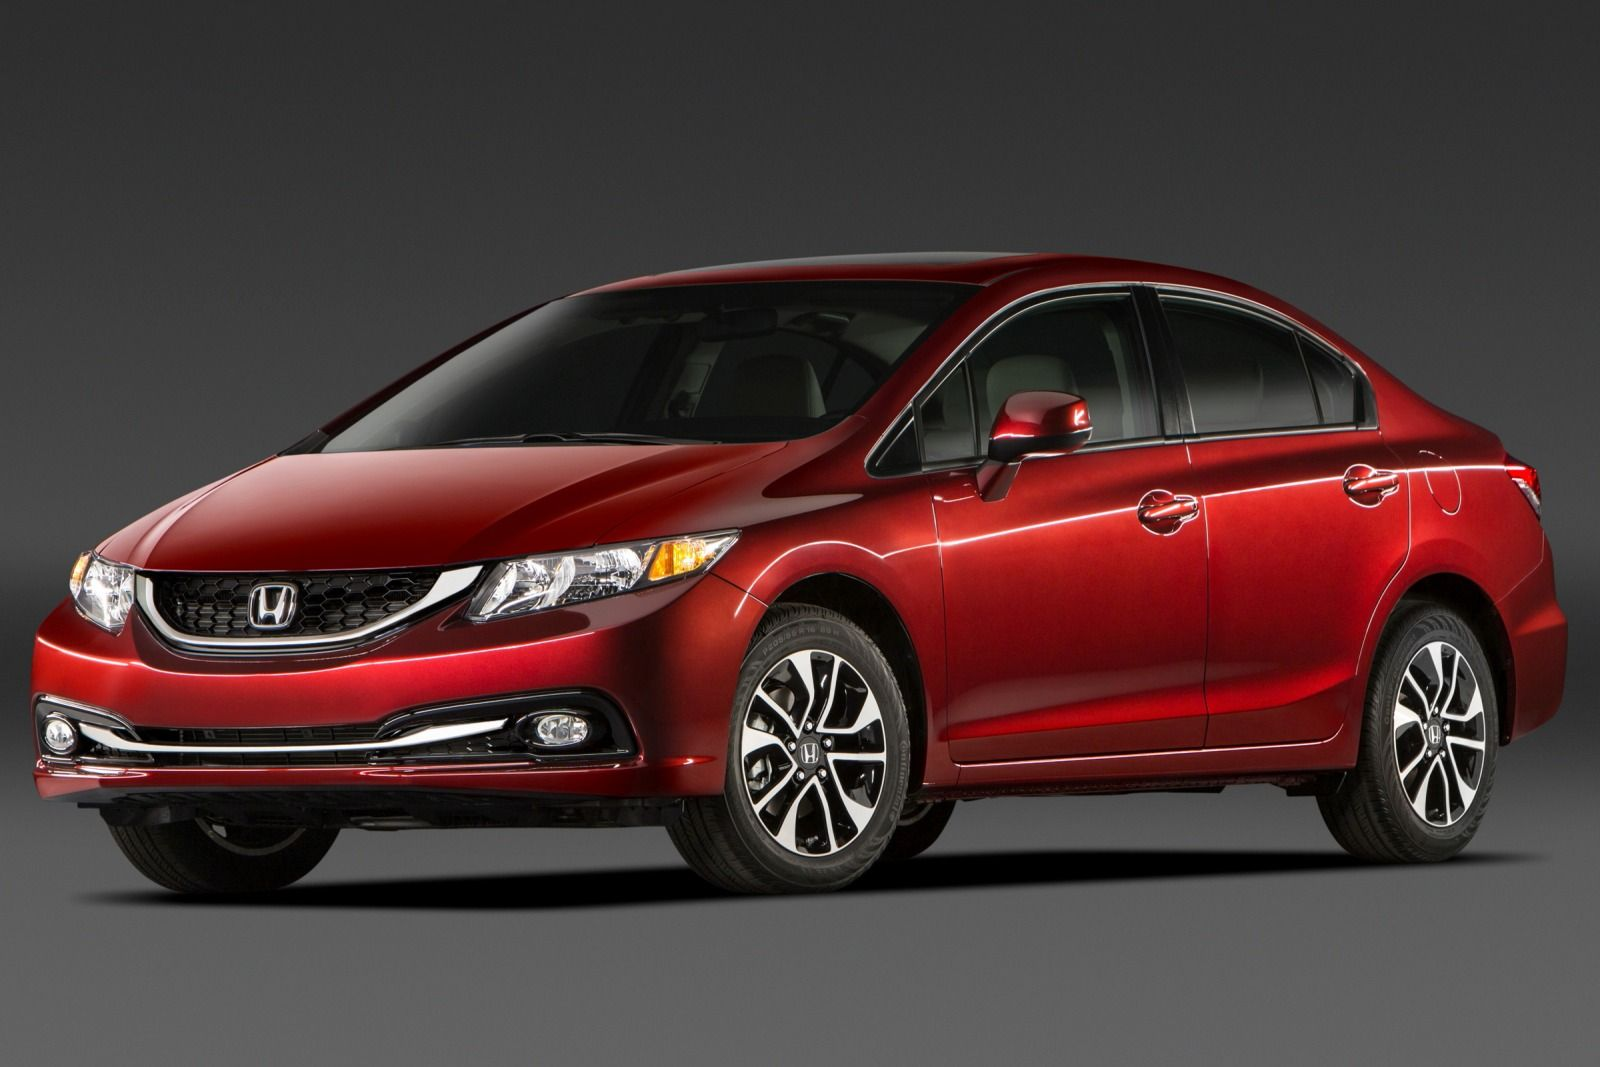 2015 Yenilenen Honda Civic Sedan